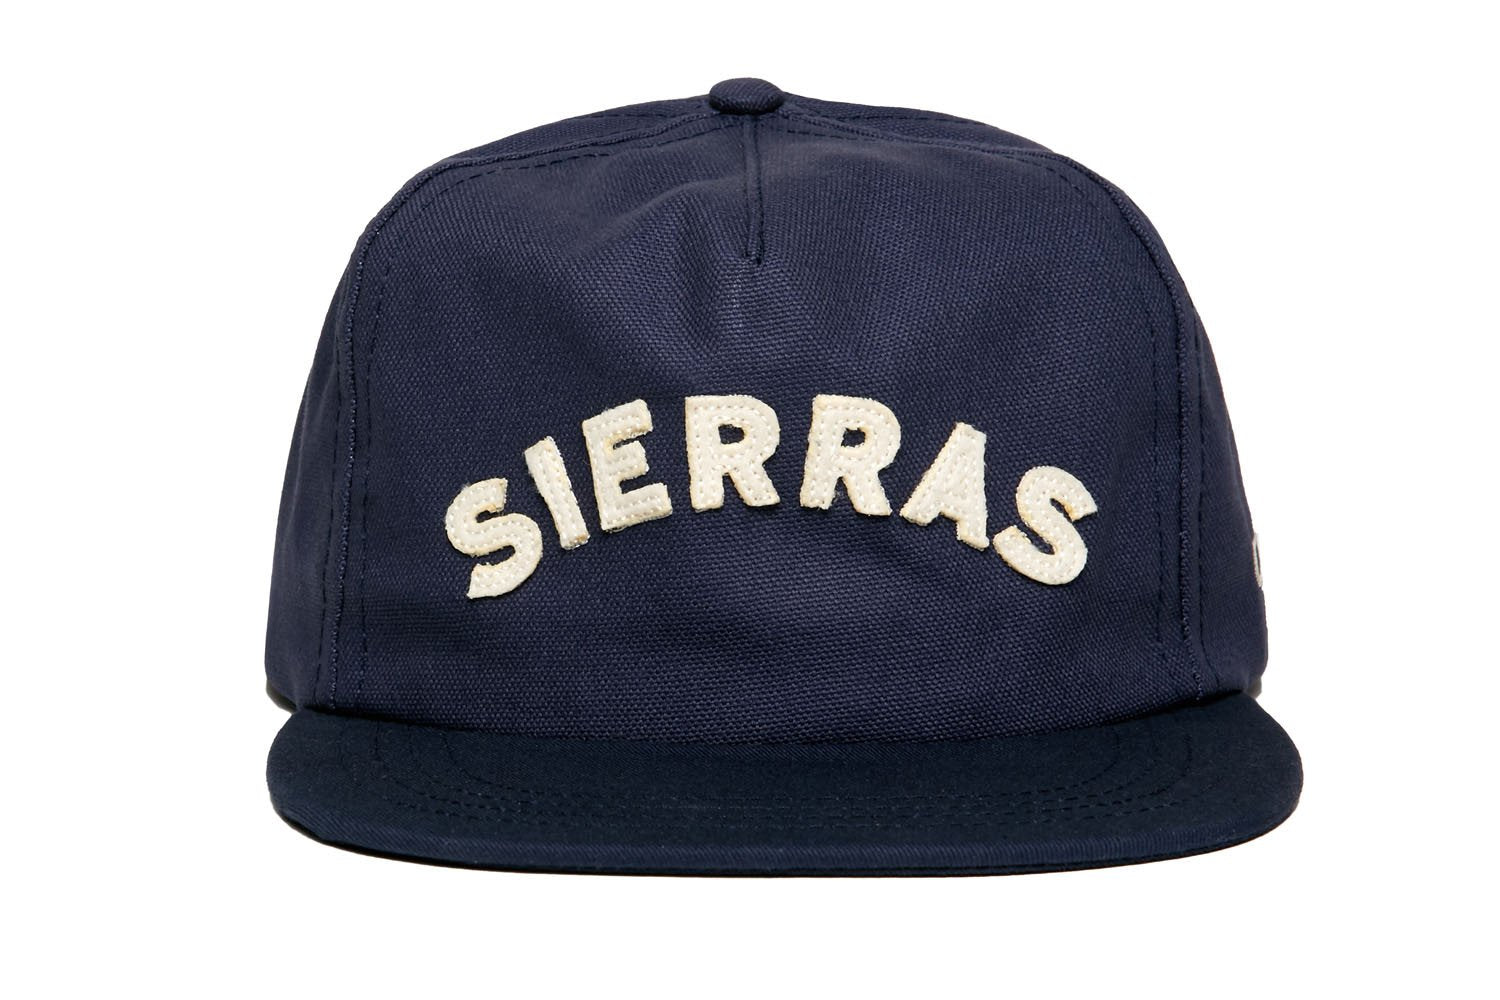 Sierras II Strapback (Backordered)